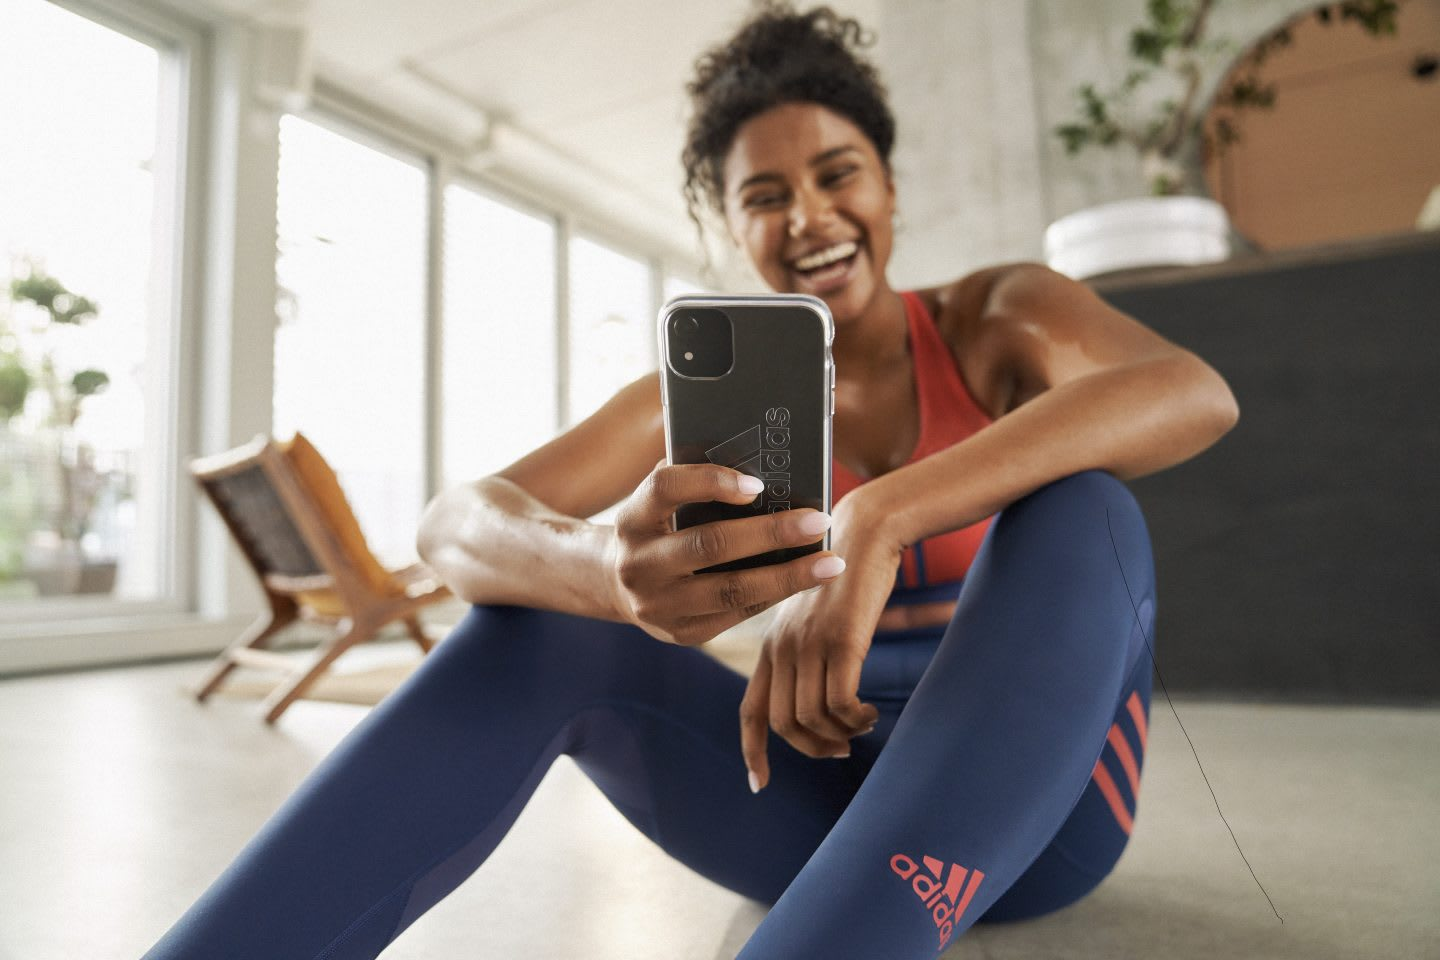 Woman relaxing after workout with the phone. Remote resume, adidas, training, workout, skills